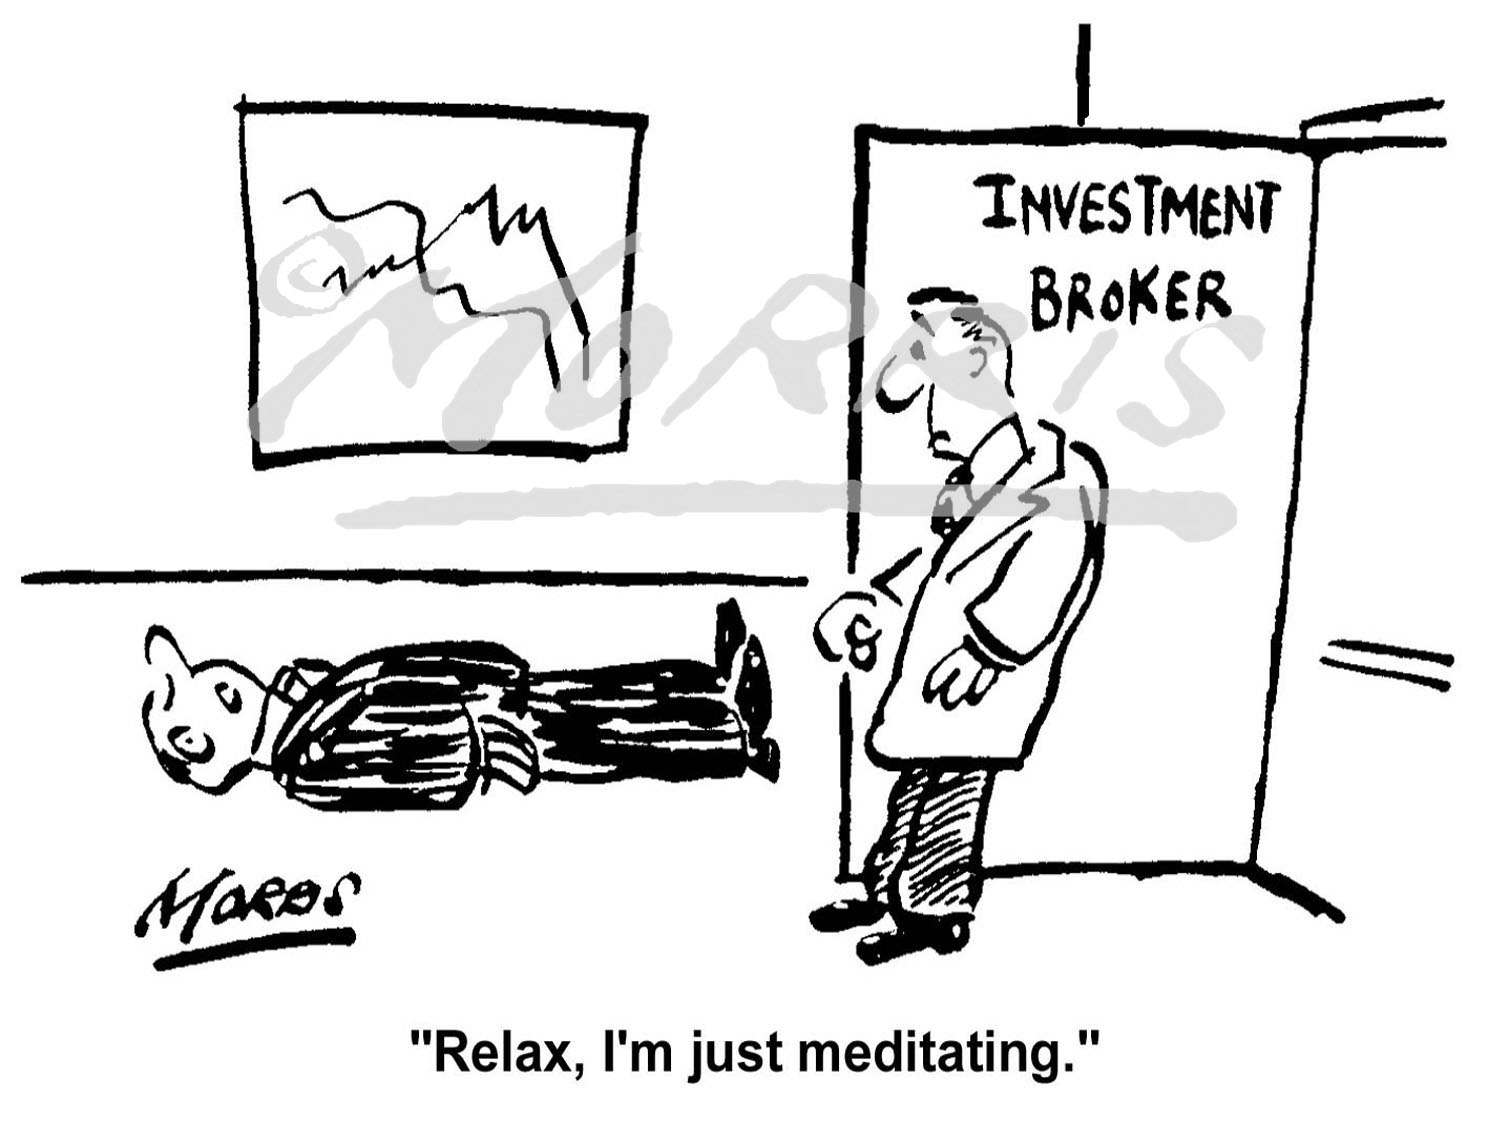 Investment Broker business cartoon Ref: 0195bw